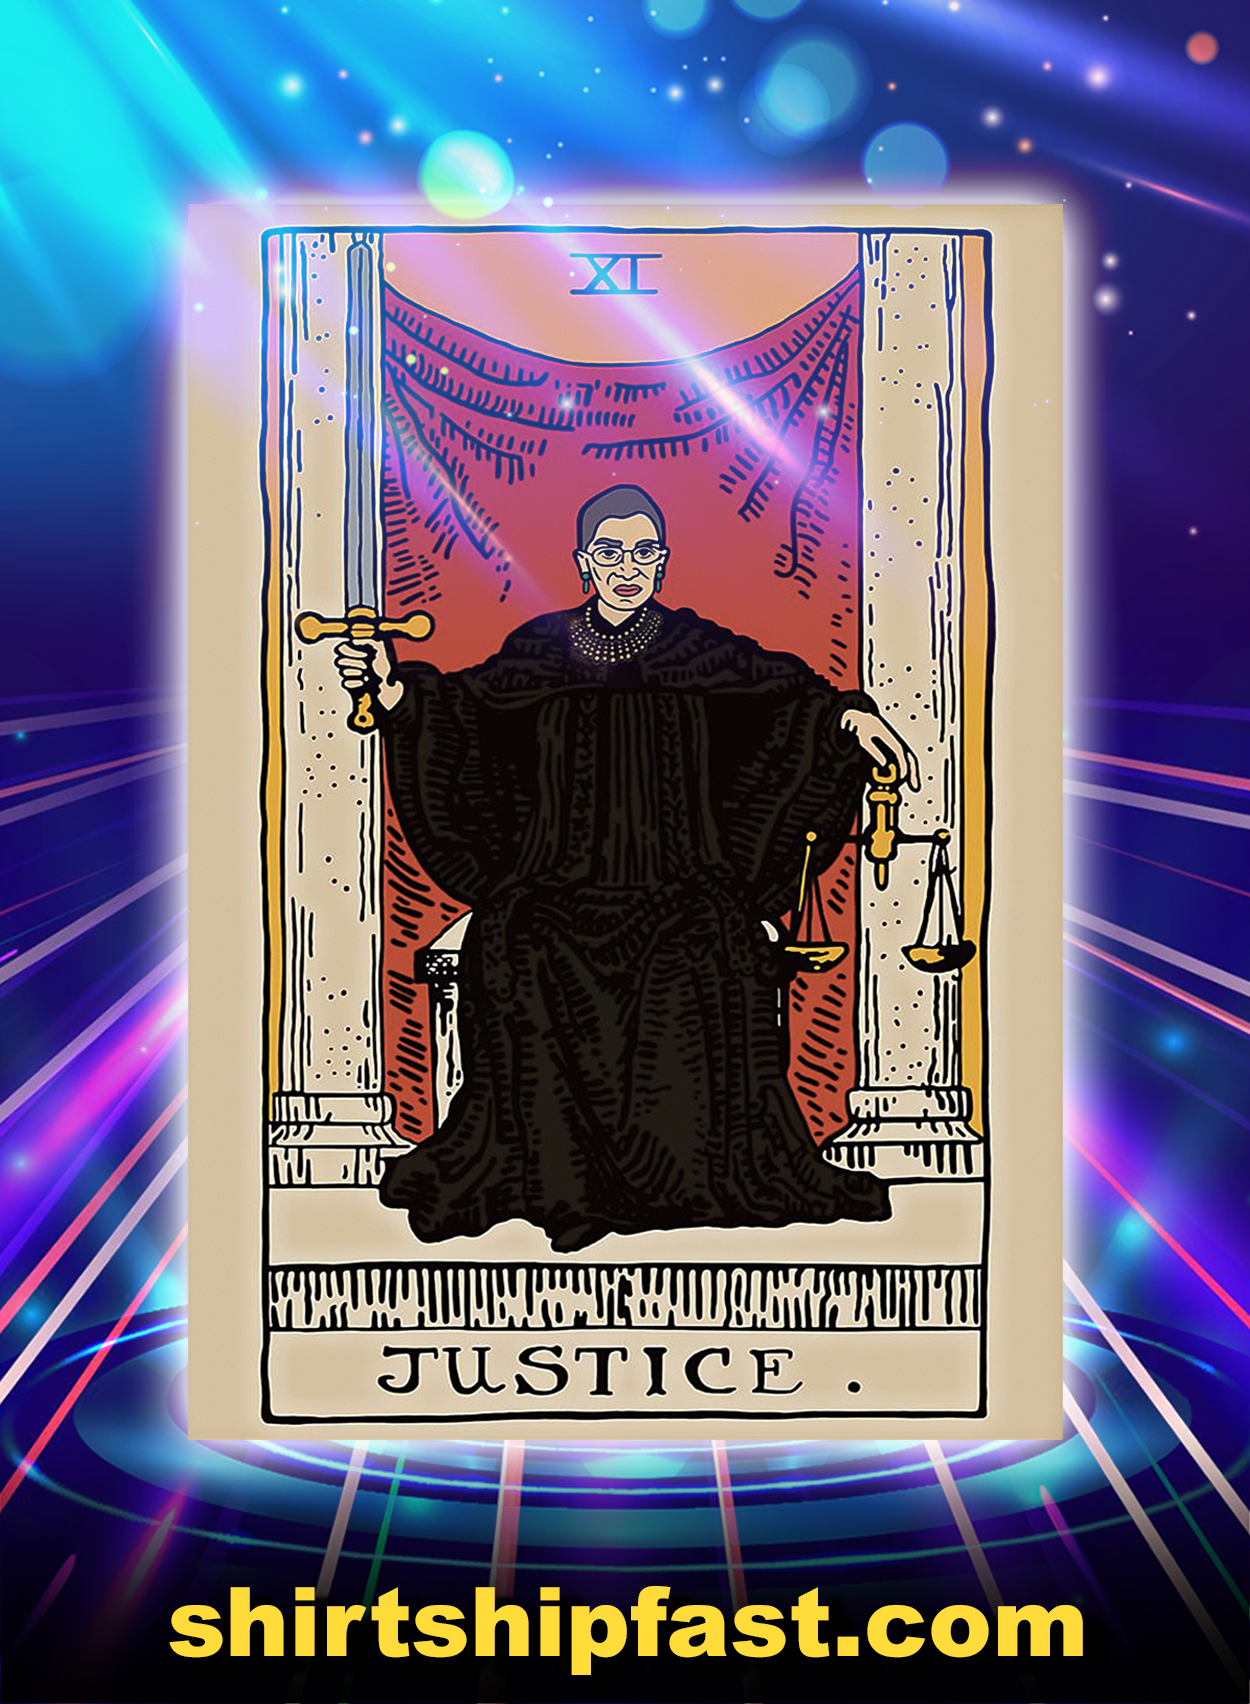 Card carot RBG justice poster - A3